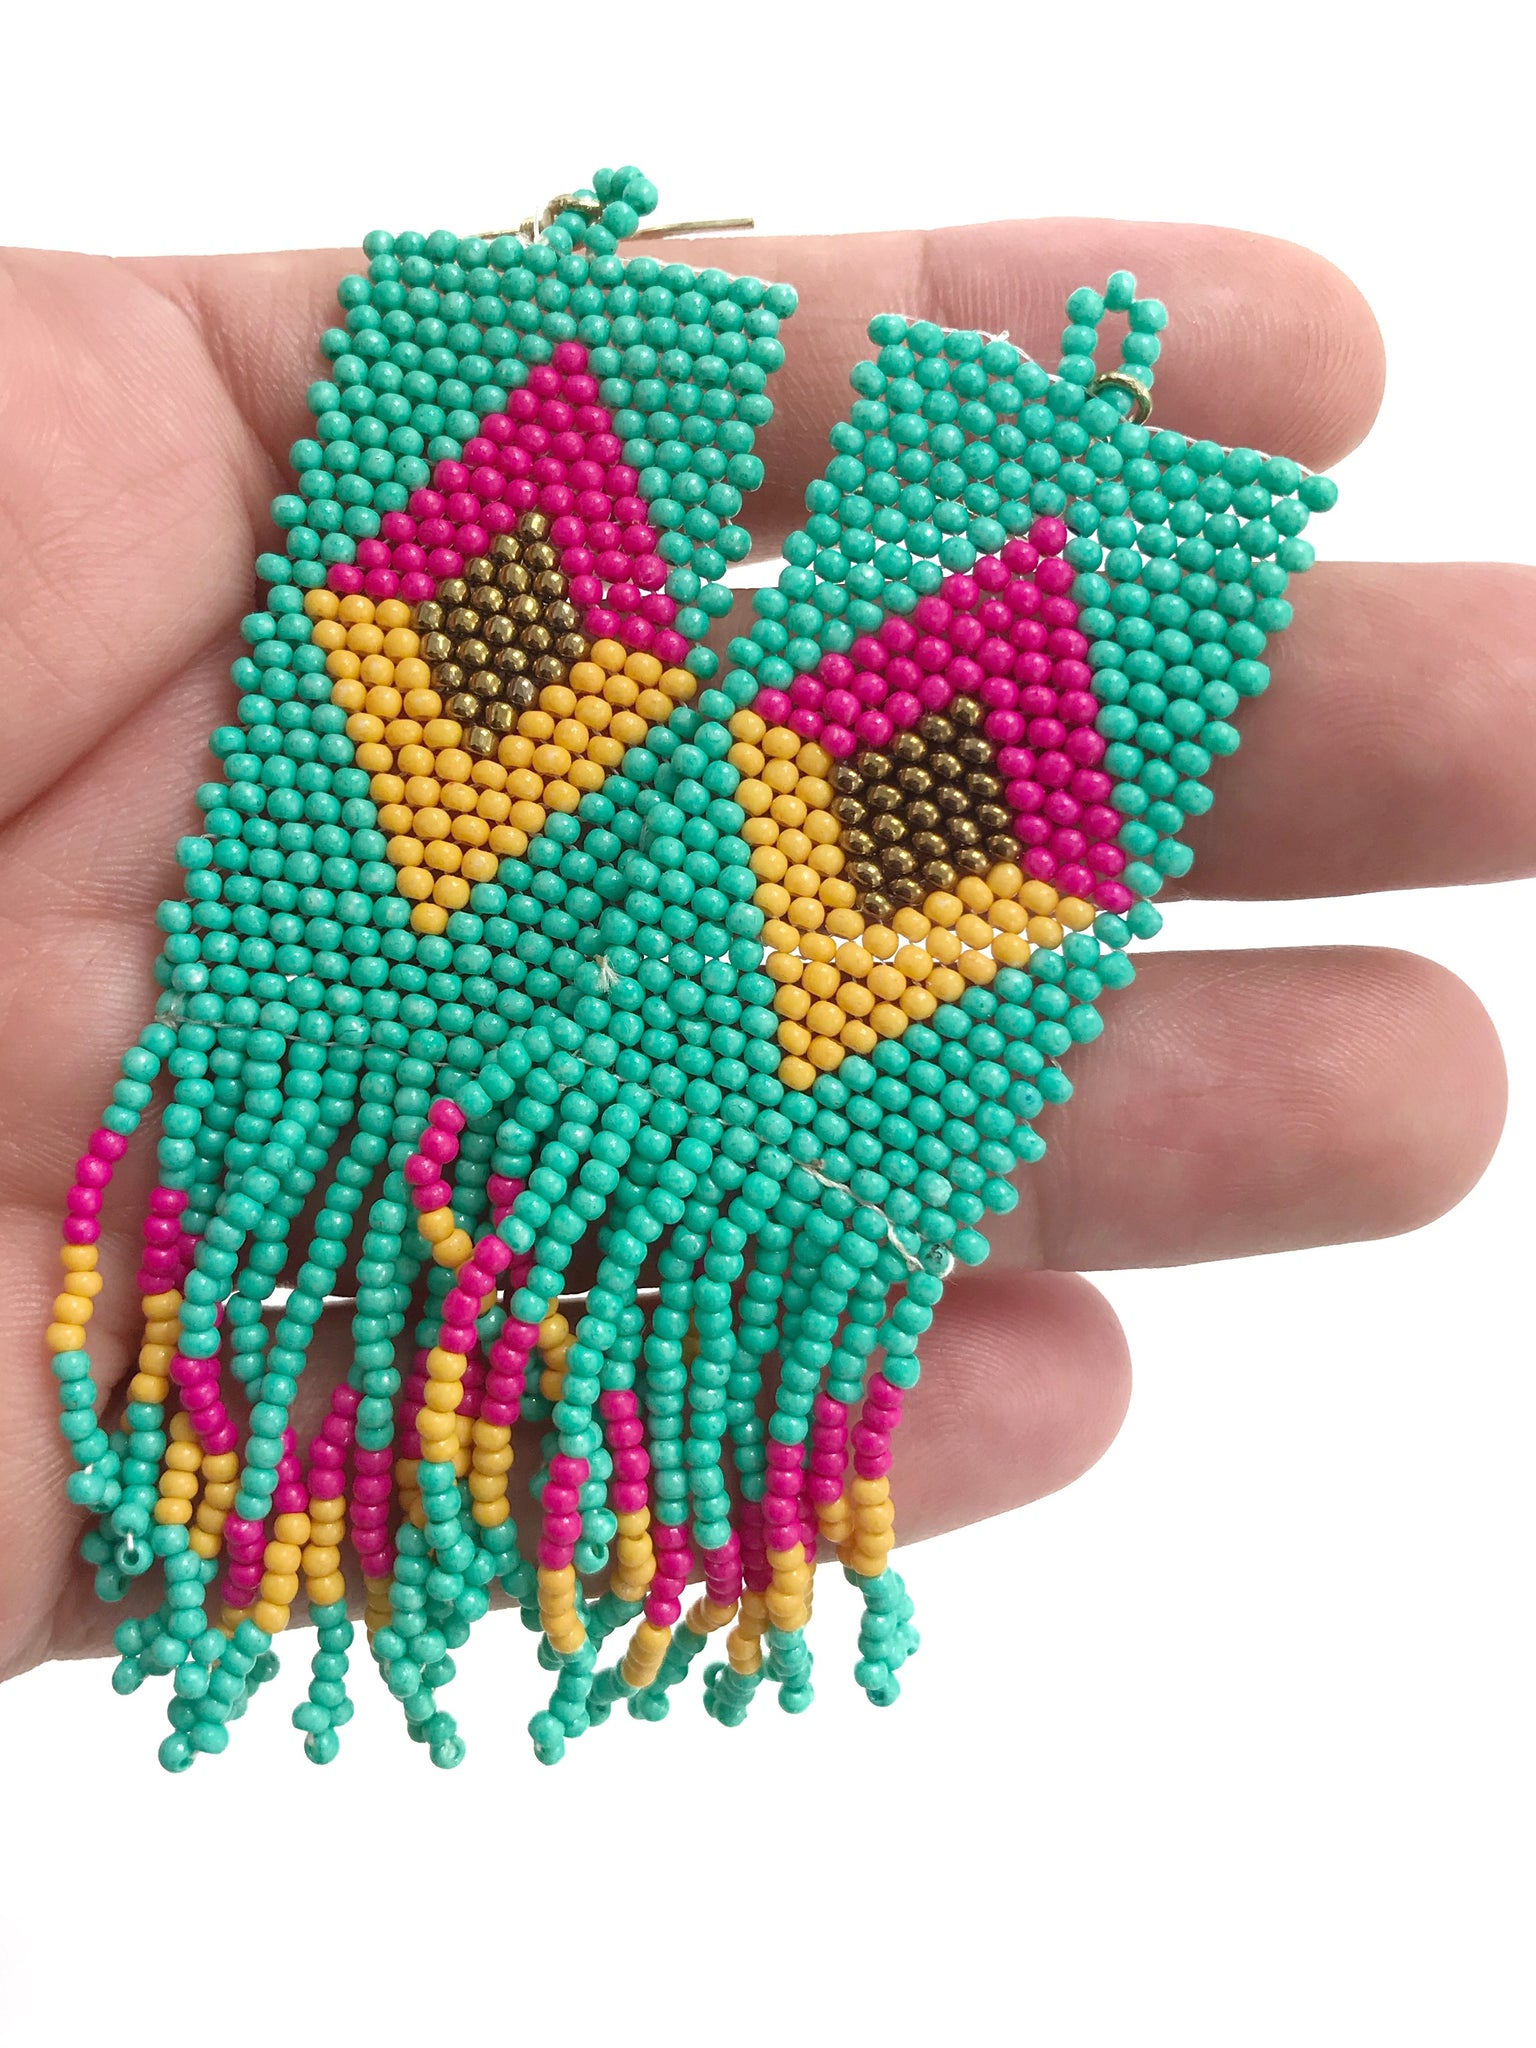 Beaded Geometric Fringe Earrings - Aqua + Pink